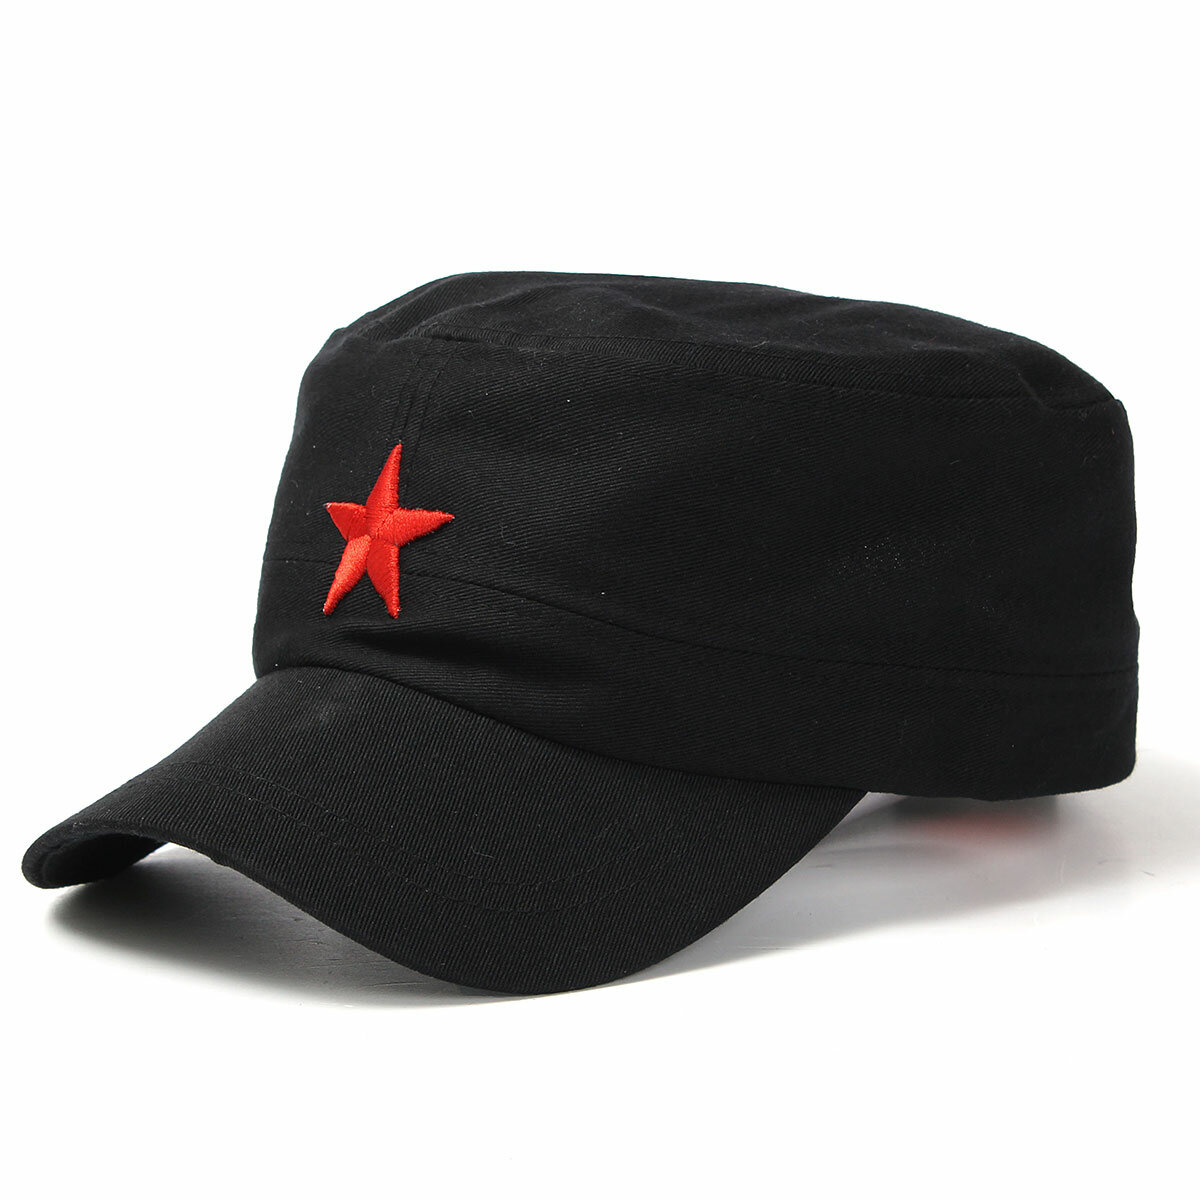 8f022e44 Unisex Red Star Cotton Army Cadet Military Cap Adjustable Durable Flat Top  Hats - Black COD